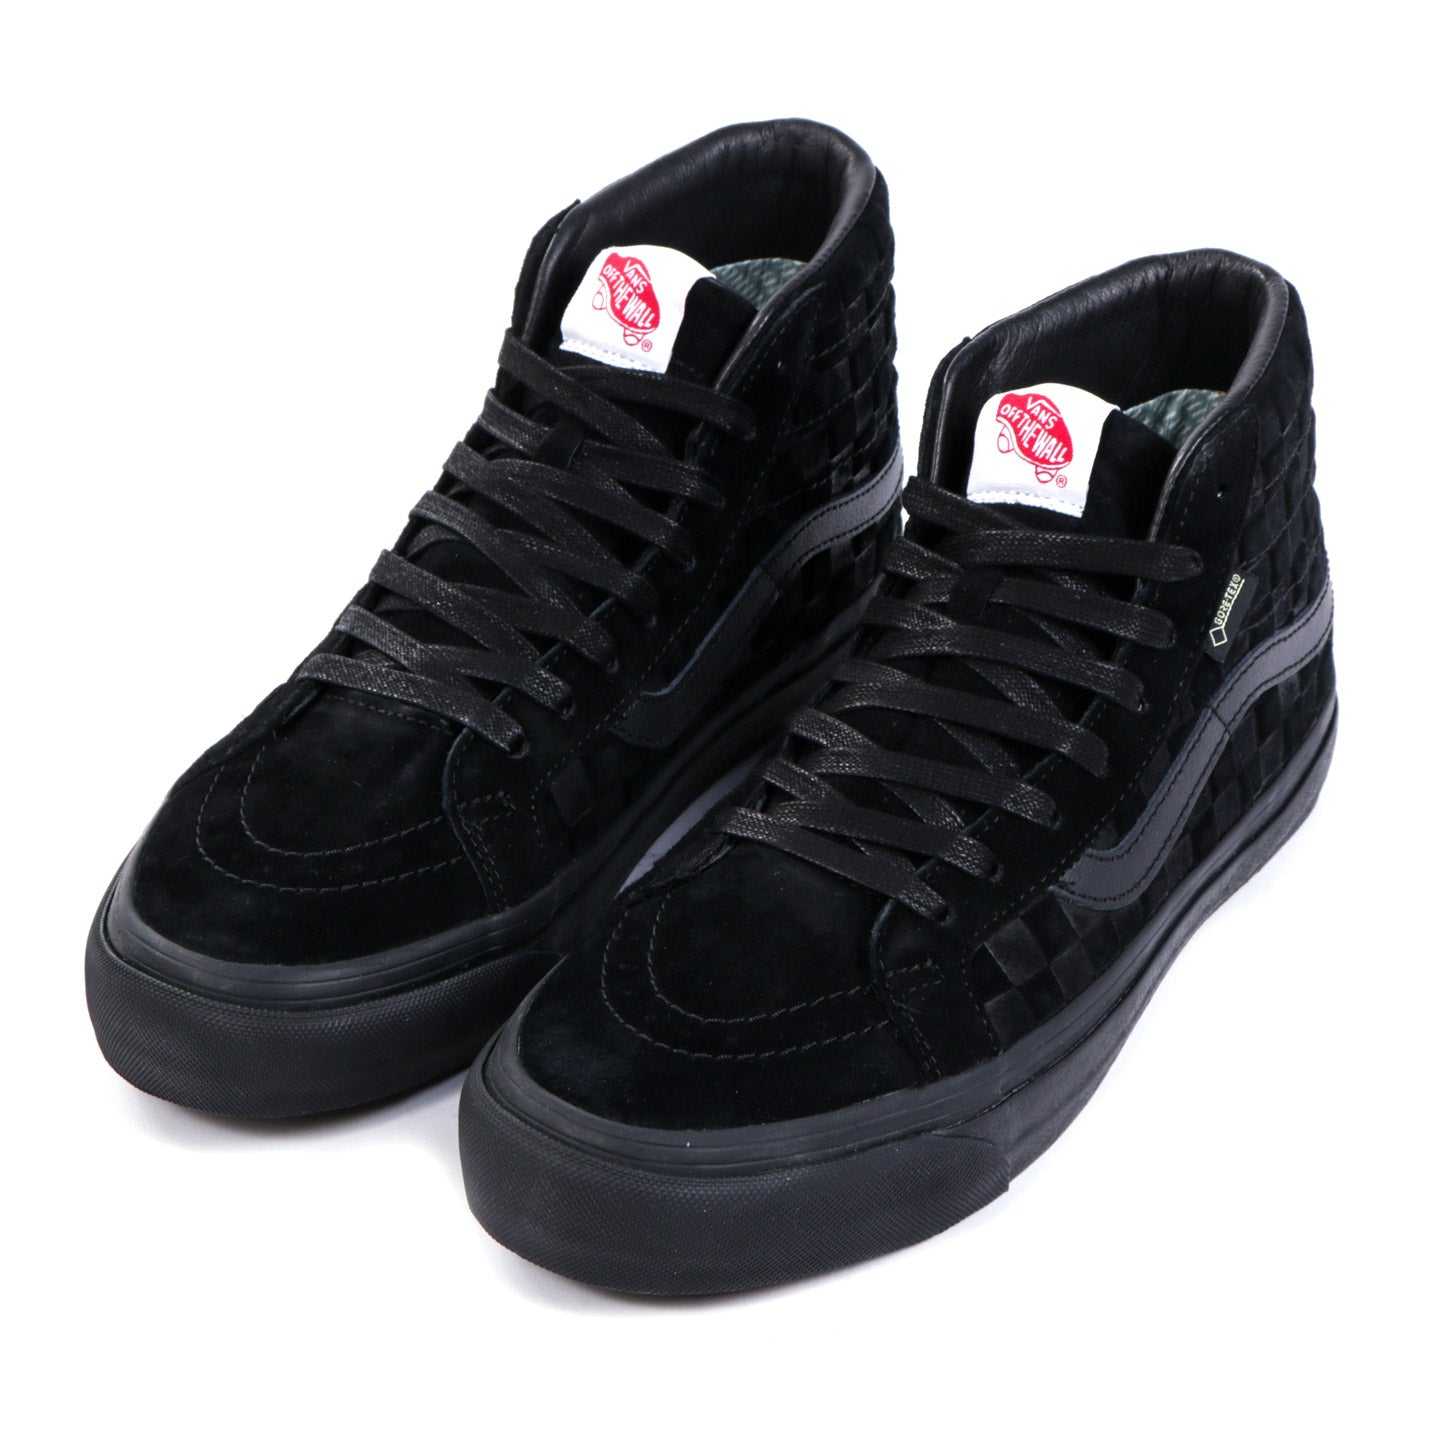 VAULT BY VANS SK8-HI GORE-TEX  LX CHECKERBOARD BLACK